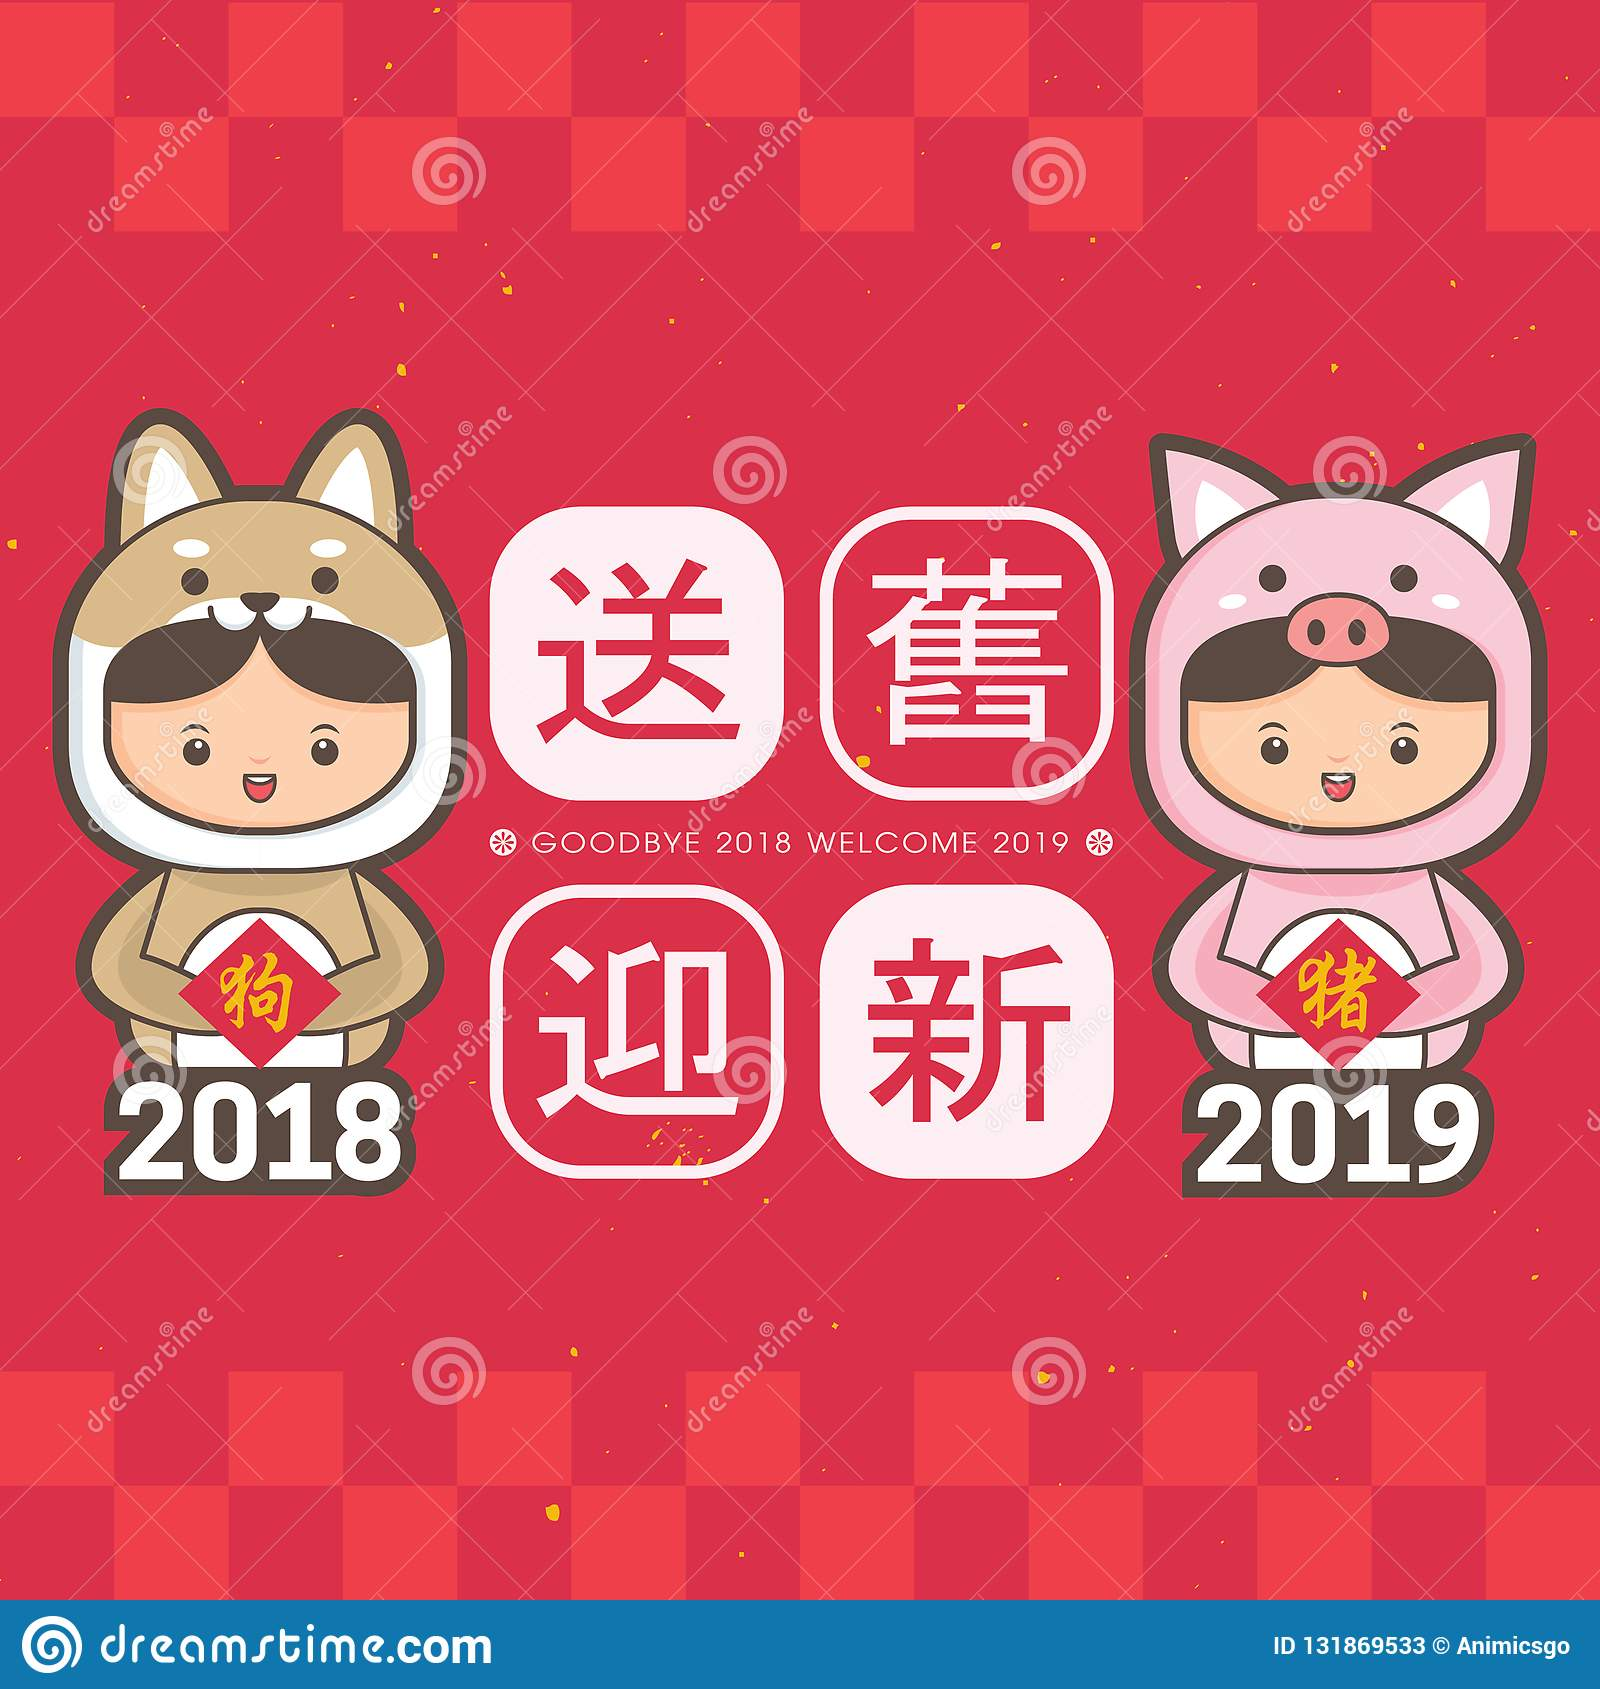 2019 Chinese New Year Greeting Card Template Cute Children Wearing